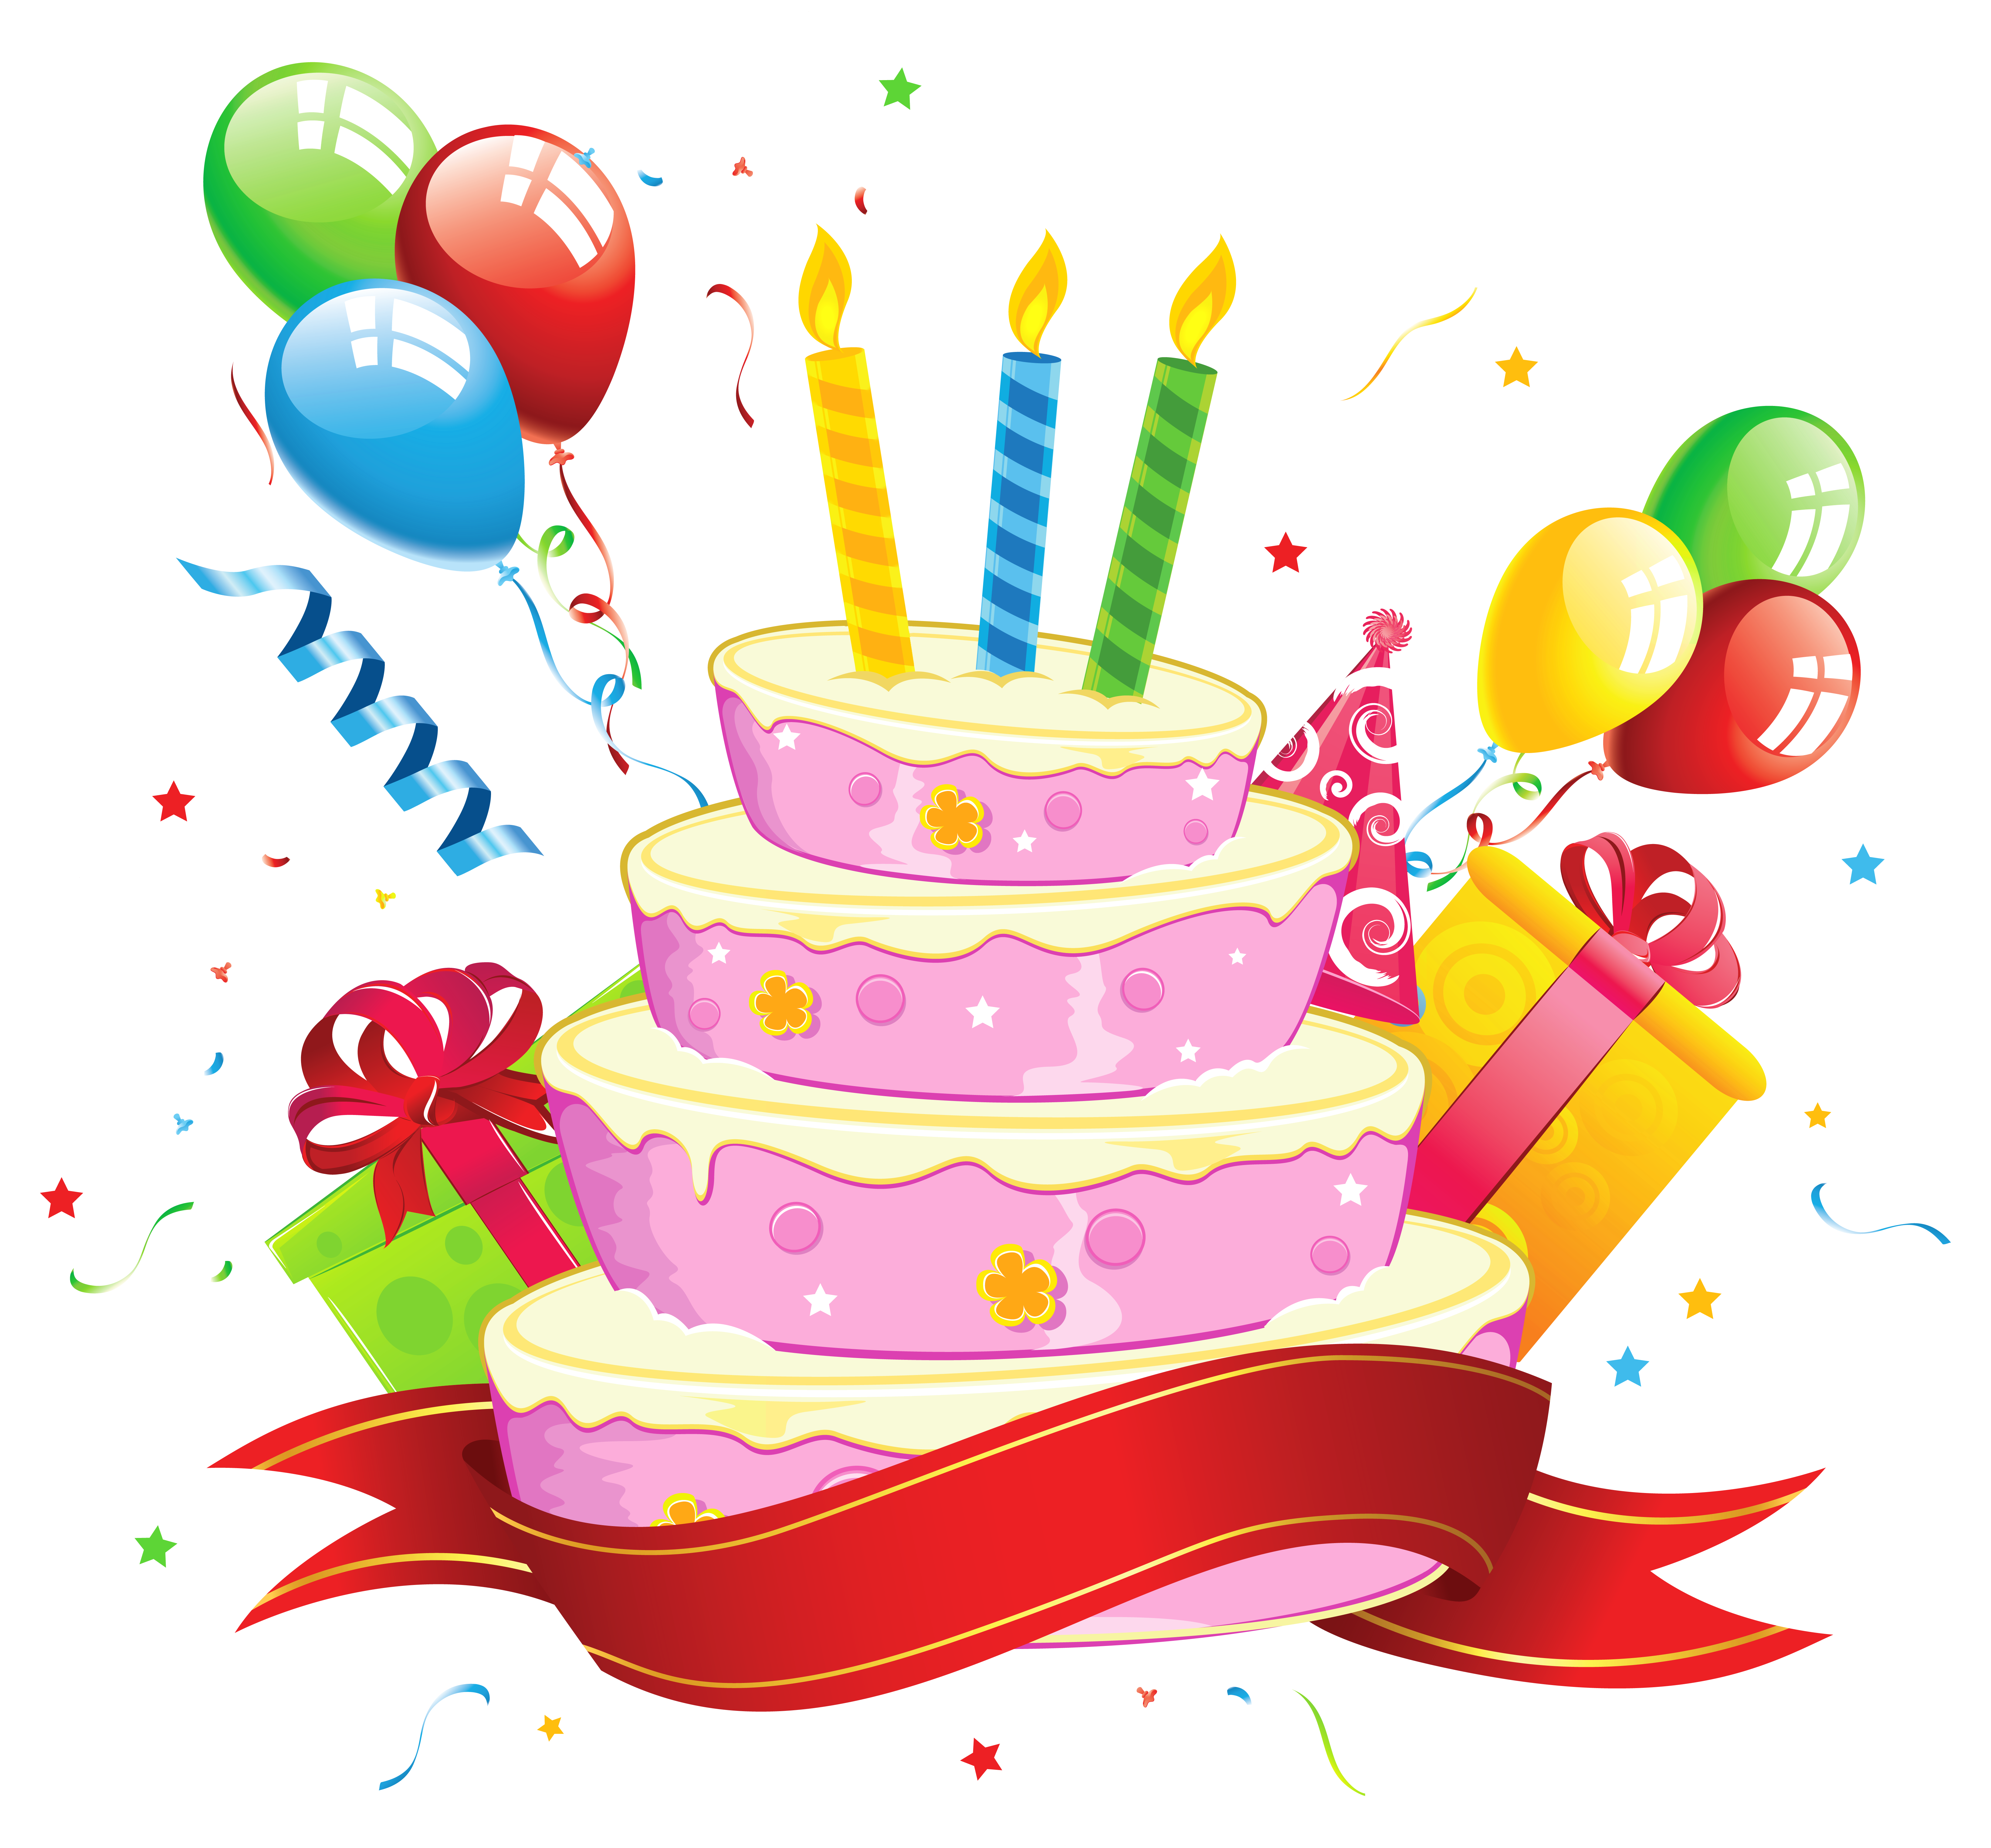 Birthday cake clipart images clip Free photo: Birthday Cake Clipart - Pie, Clipart, Candles - Free ... clip